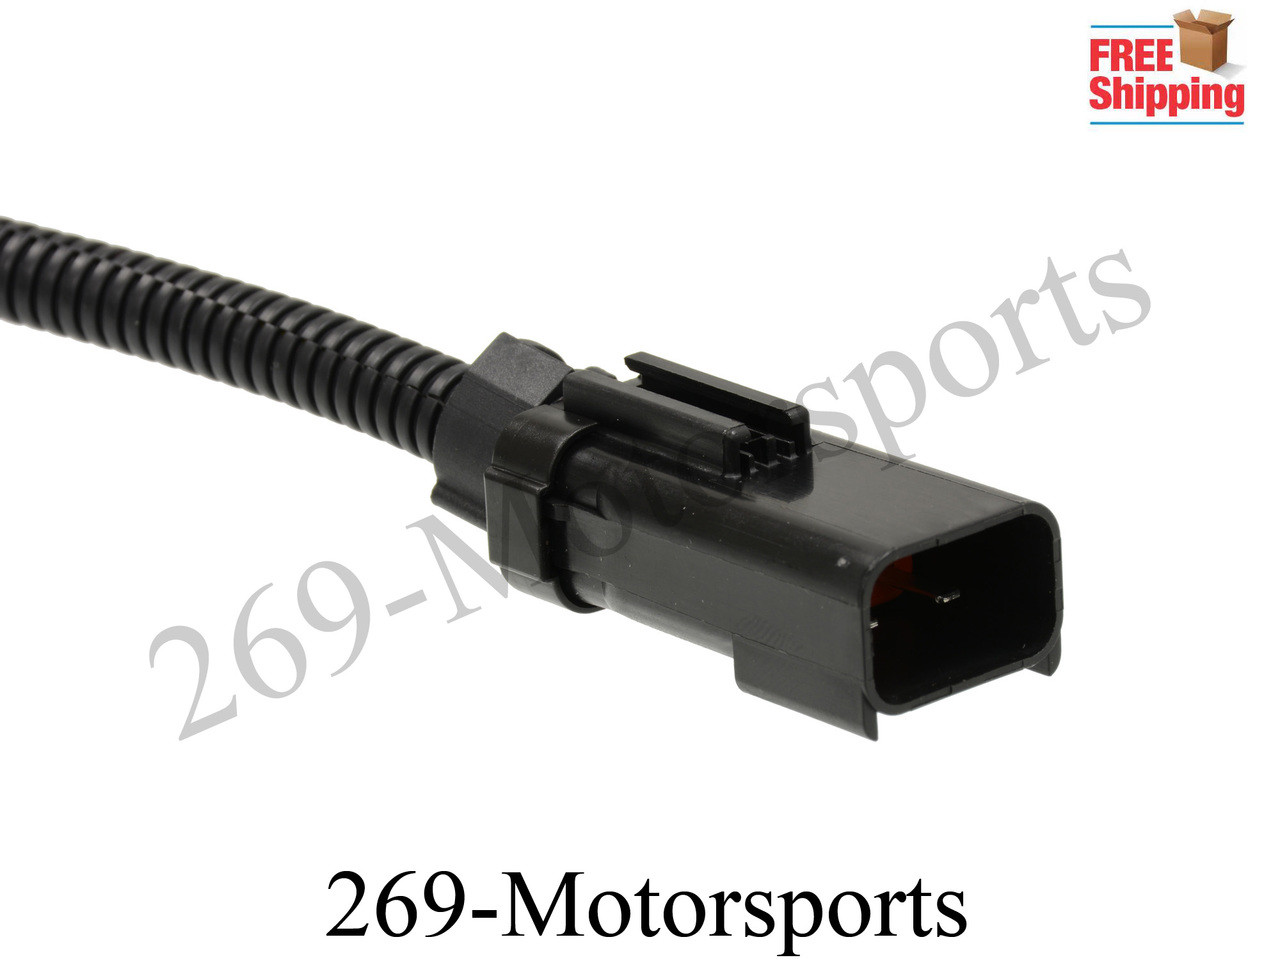 tail light wiring harness lamp connector fits 02 03 dodge. Black Bedroom Furniture Sets. Home Design Ideas